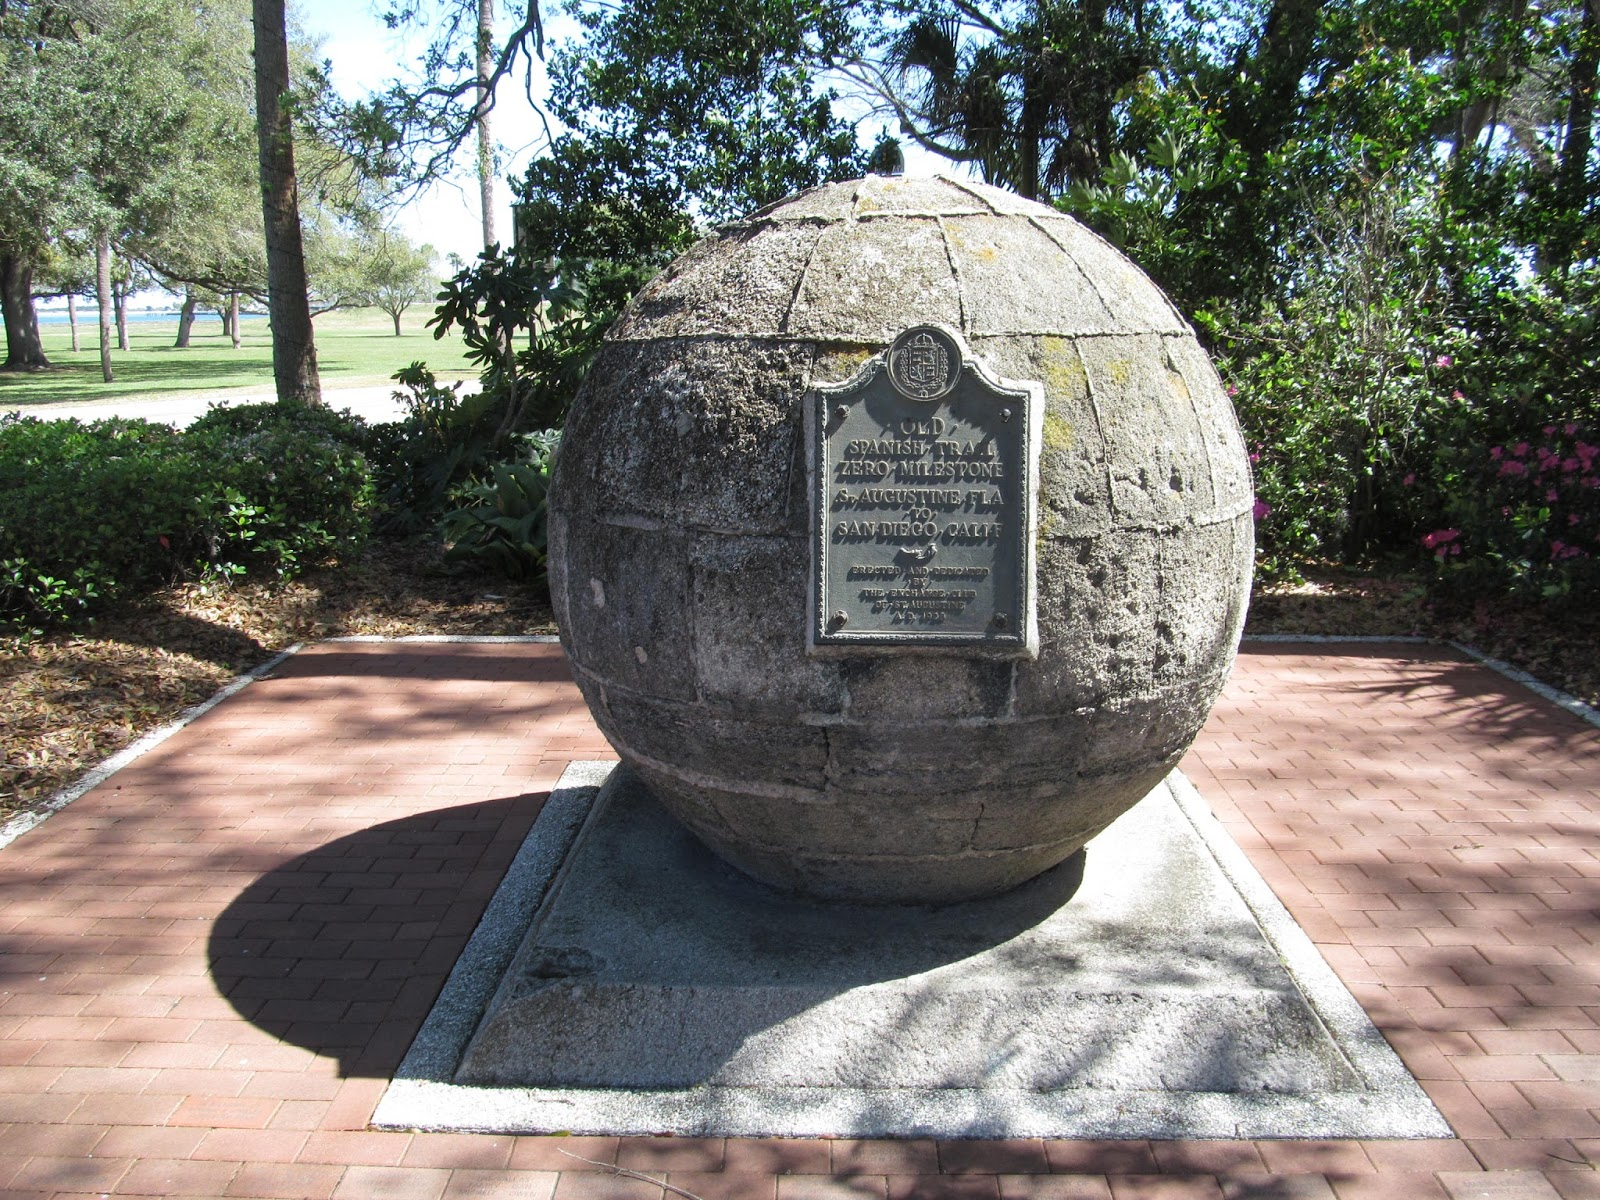 The coquina sphere marks the Old Spanish Trail Zero Milestone located in St. Augustine, Florida.